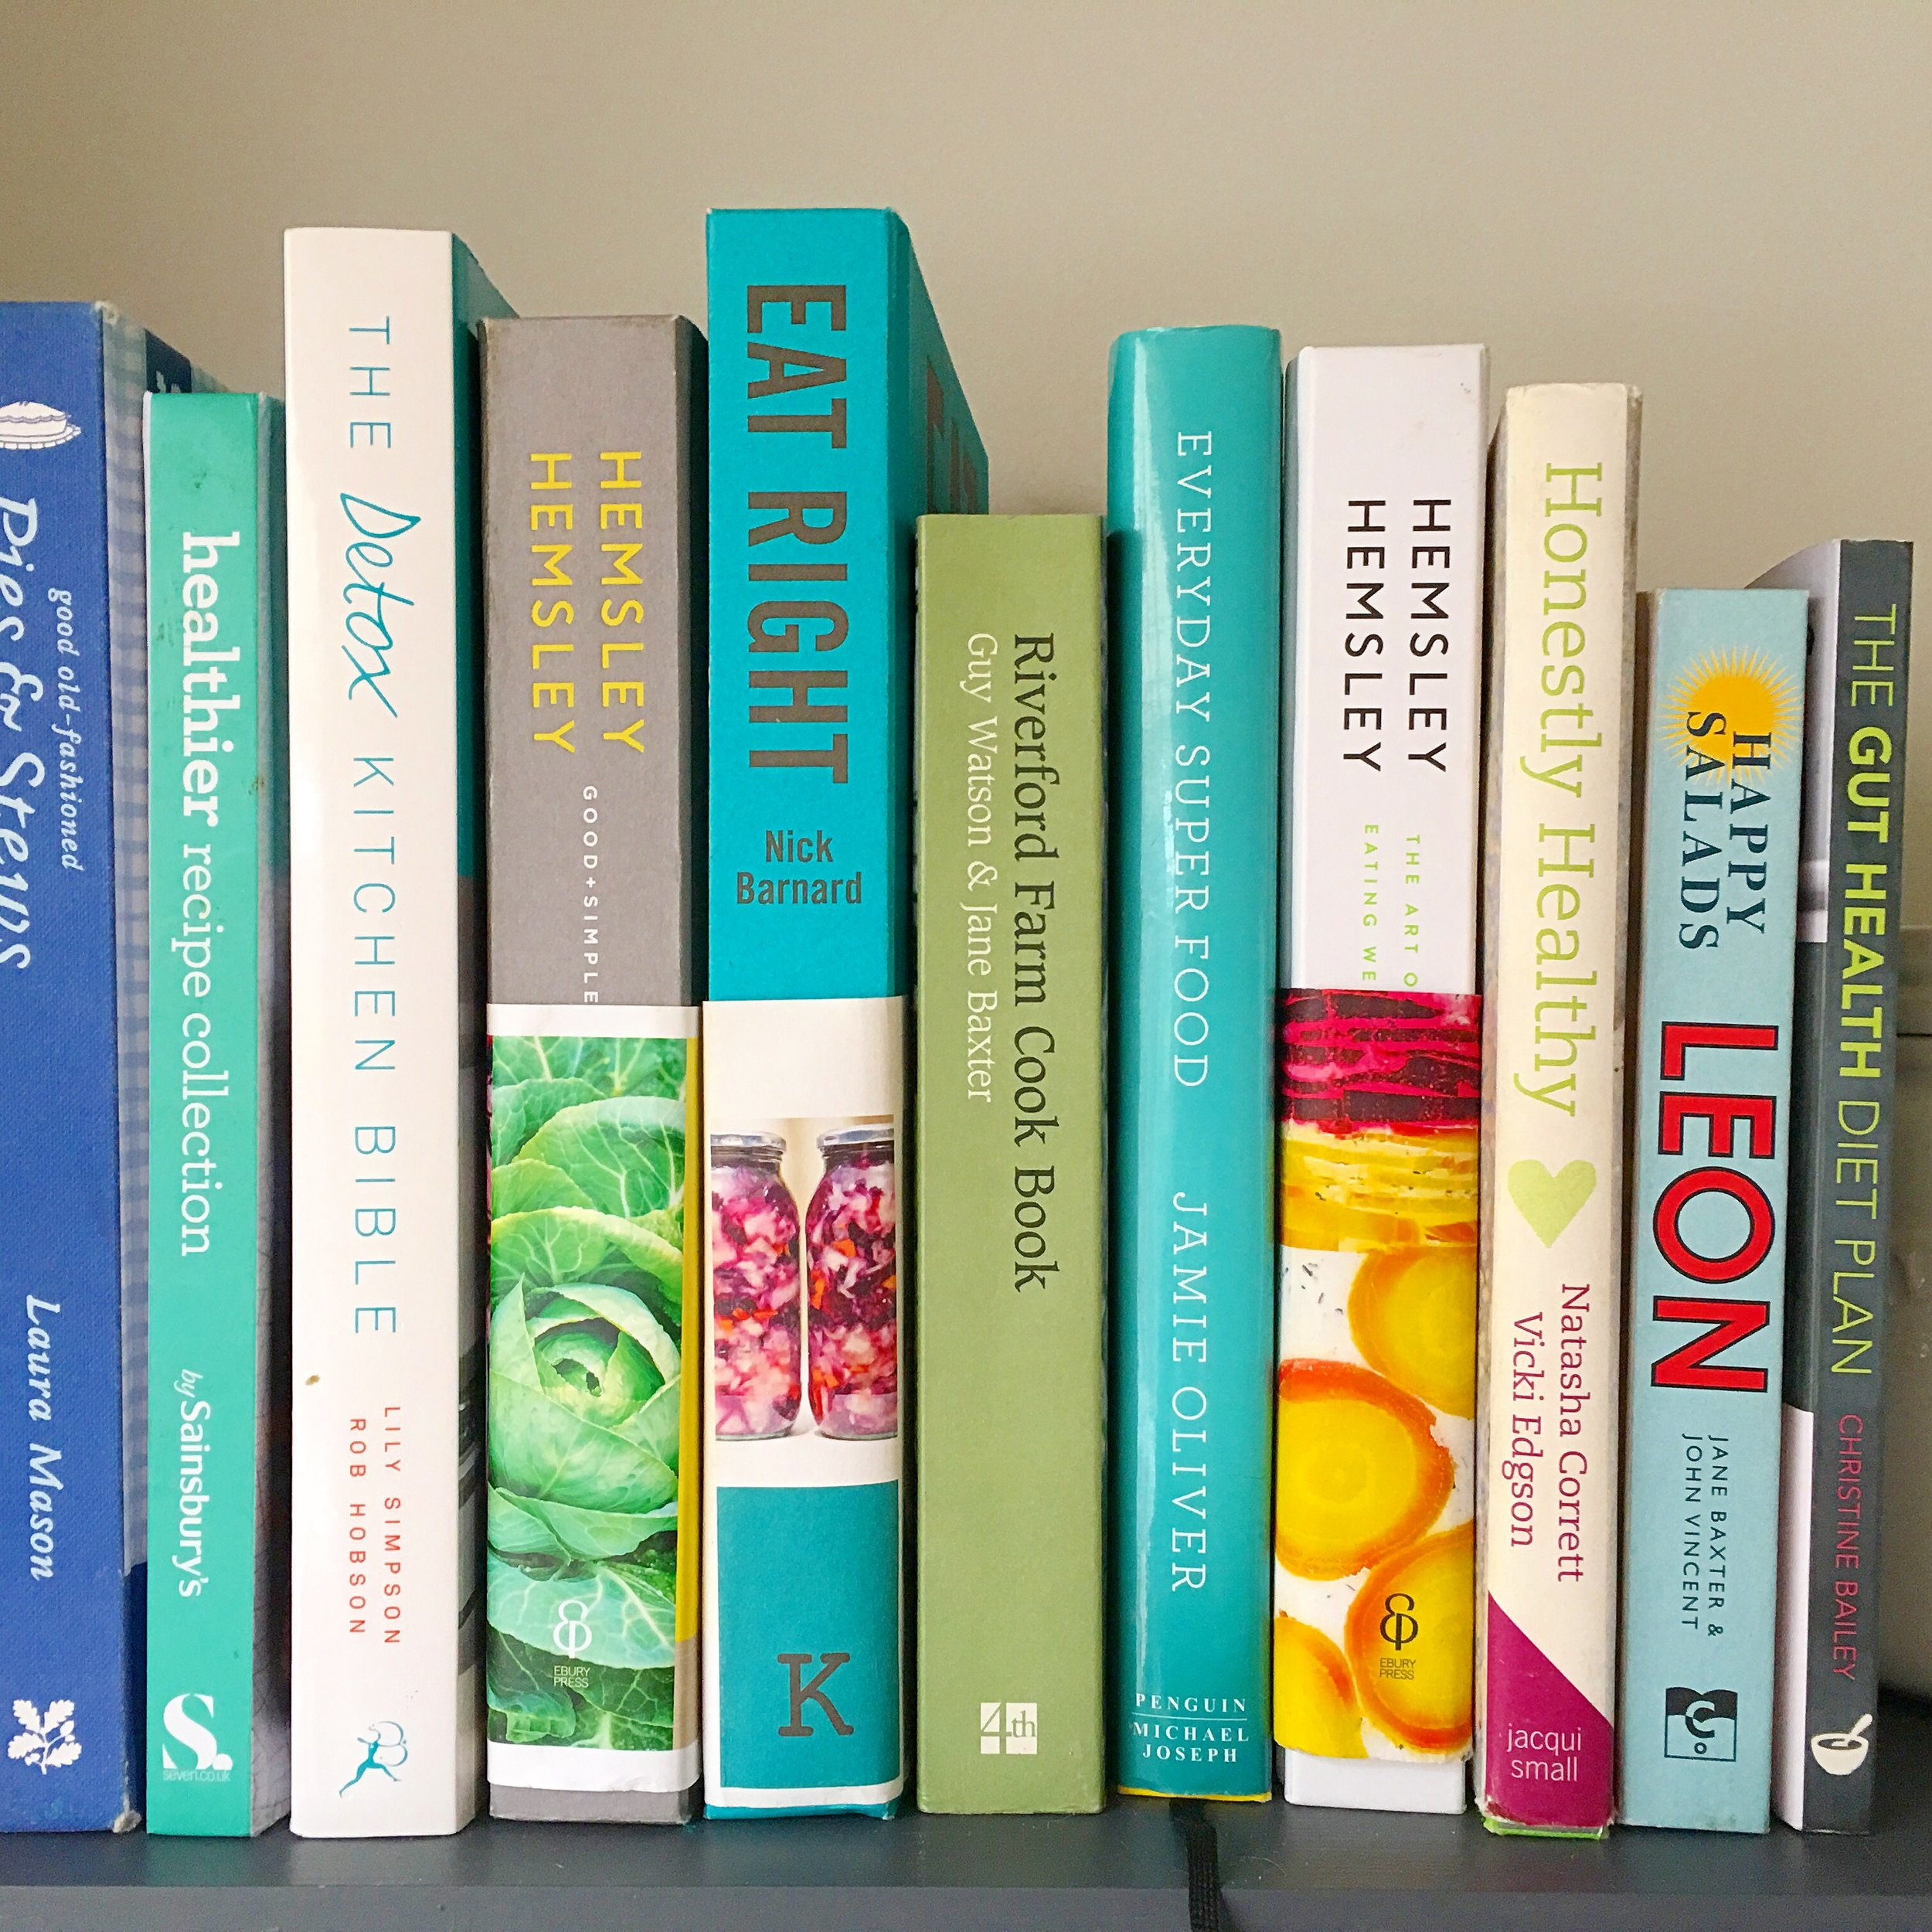 Top five cookbooks for fertility and PCOS